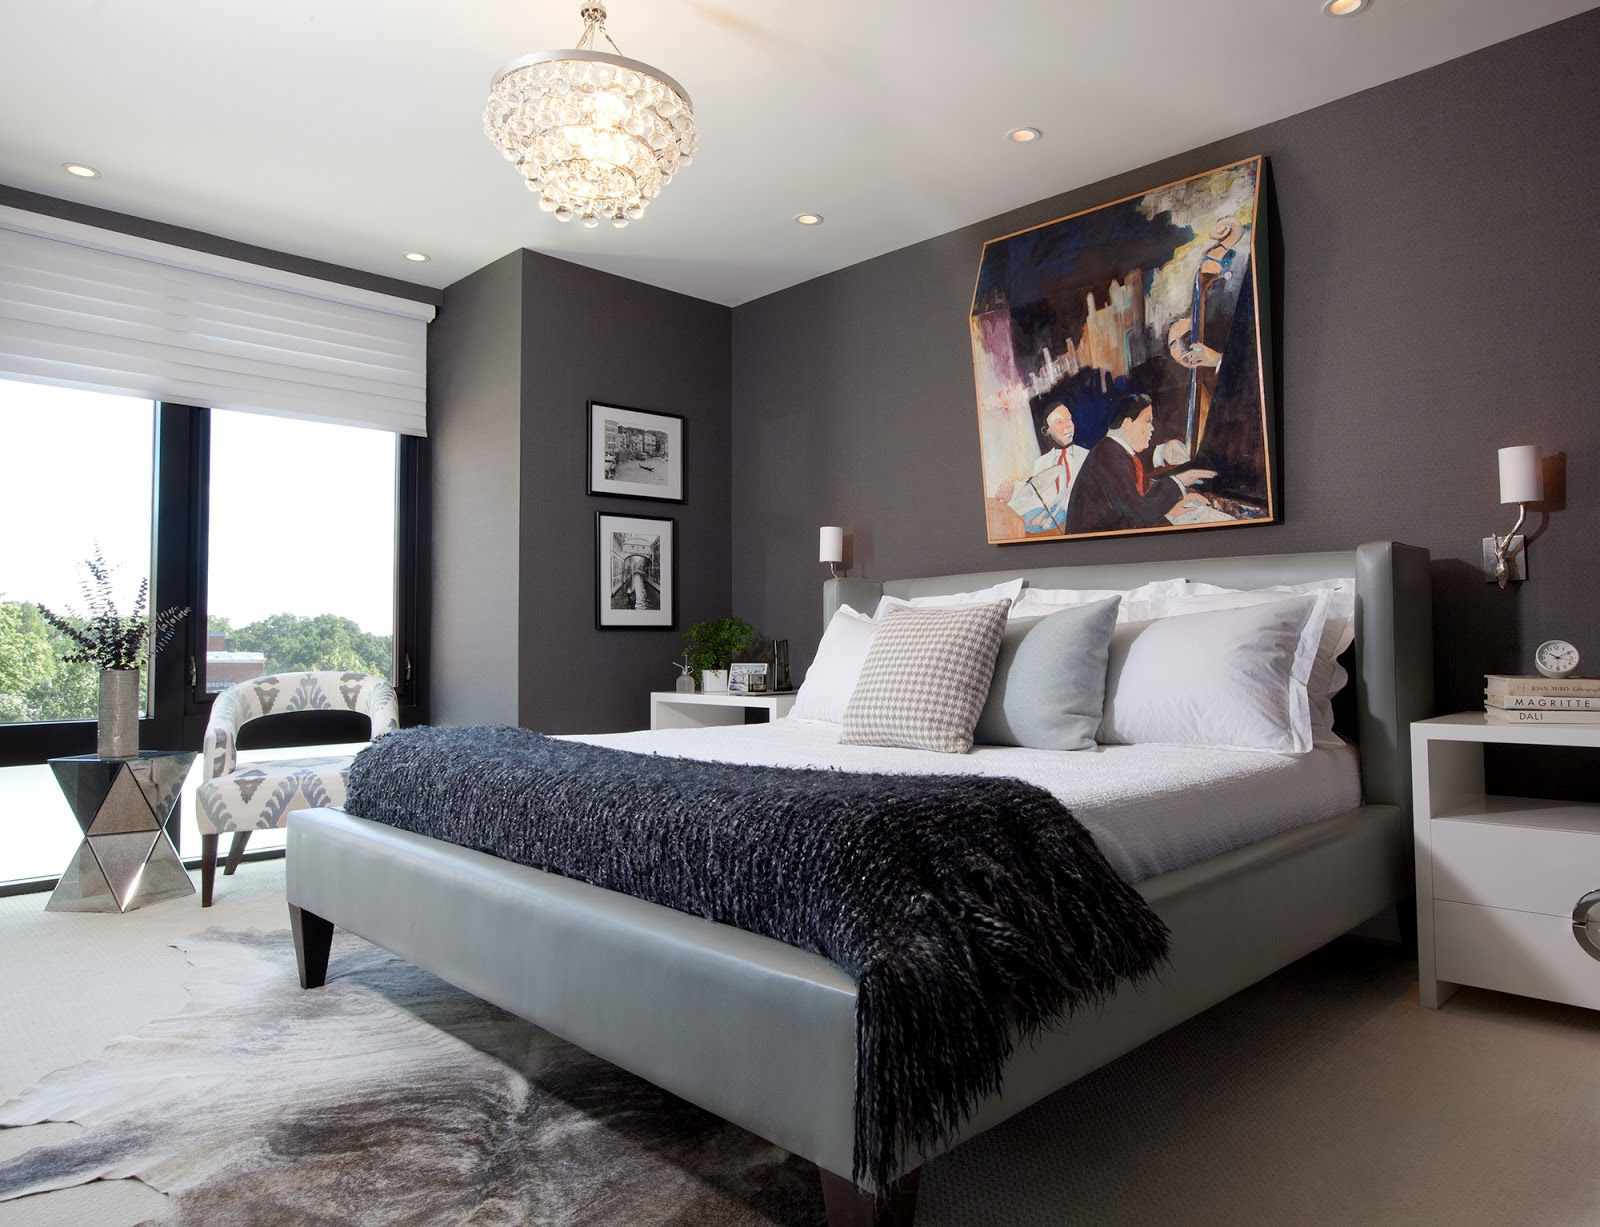 Top 50 Luxury Master Bedroom Designs \u2013 part 2 | Luxury master ...